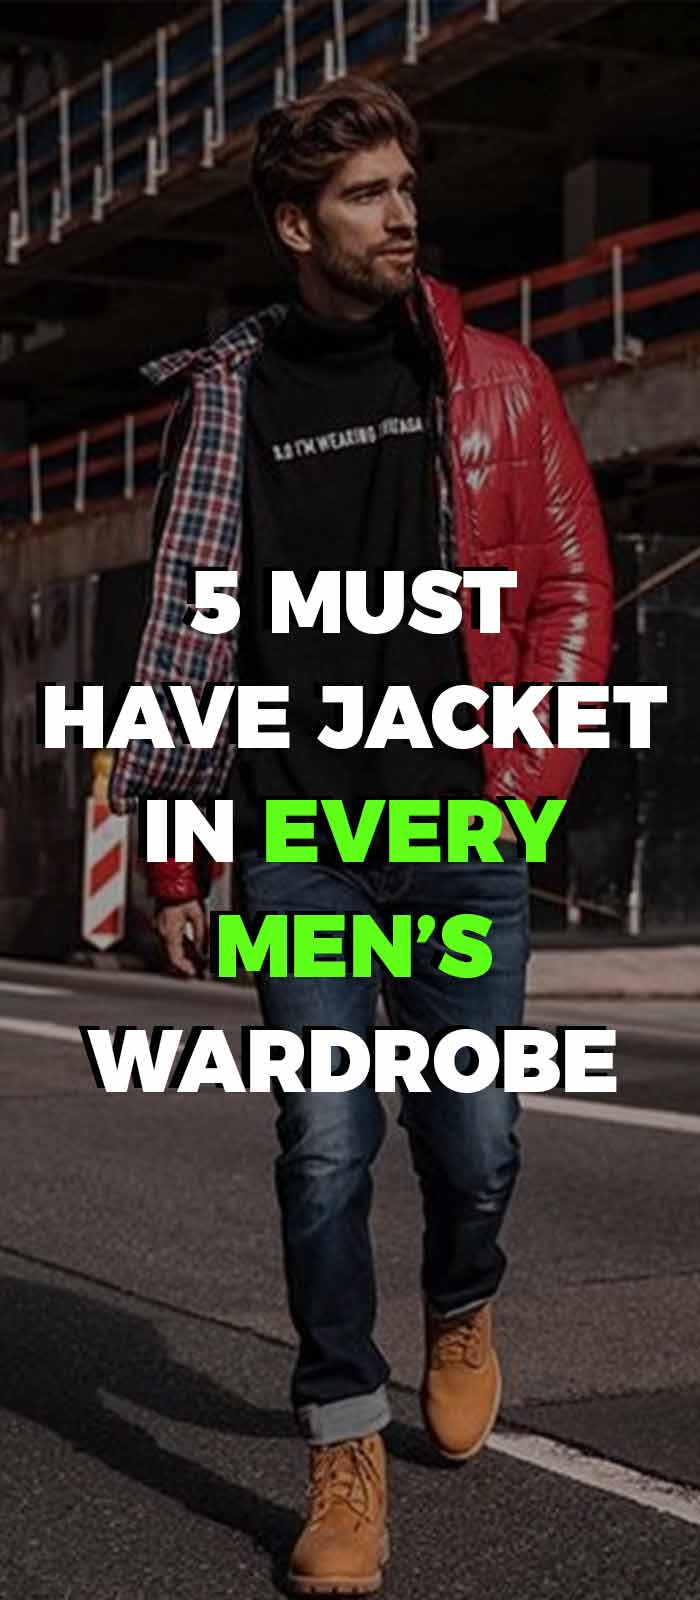 5-Must-Have-Jacket-in-Every-Man's-Wardrobe